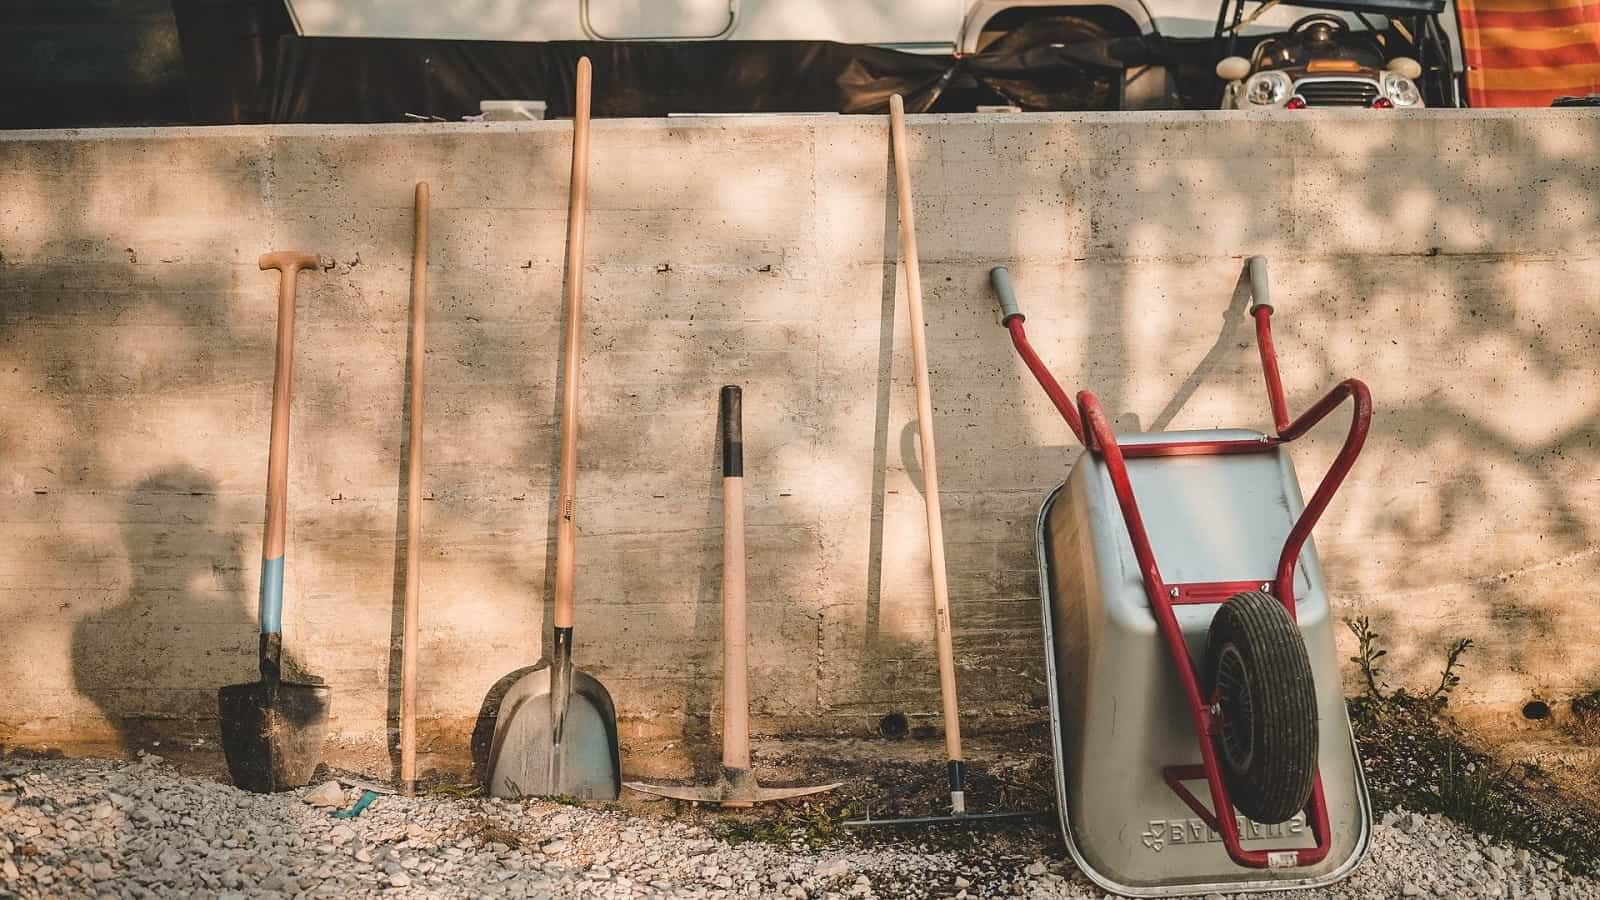 How To Find The Top Gardening Gear And Make Your Job Easier. Instruments at the wooden fence